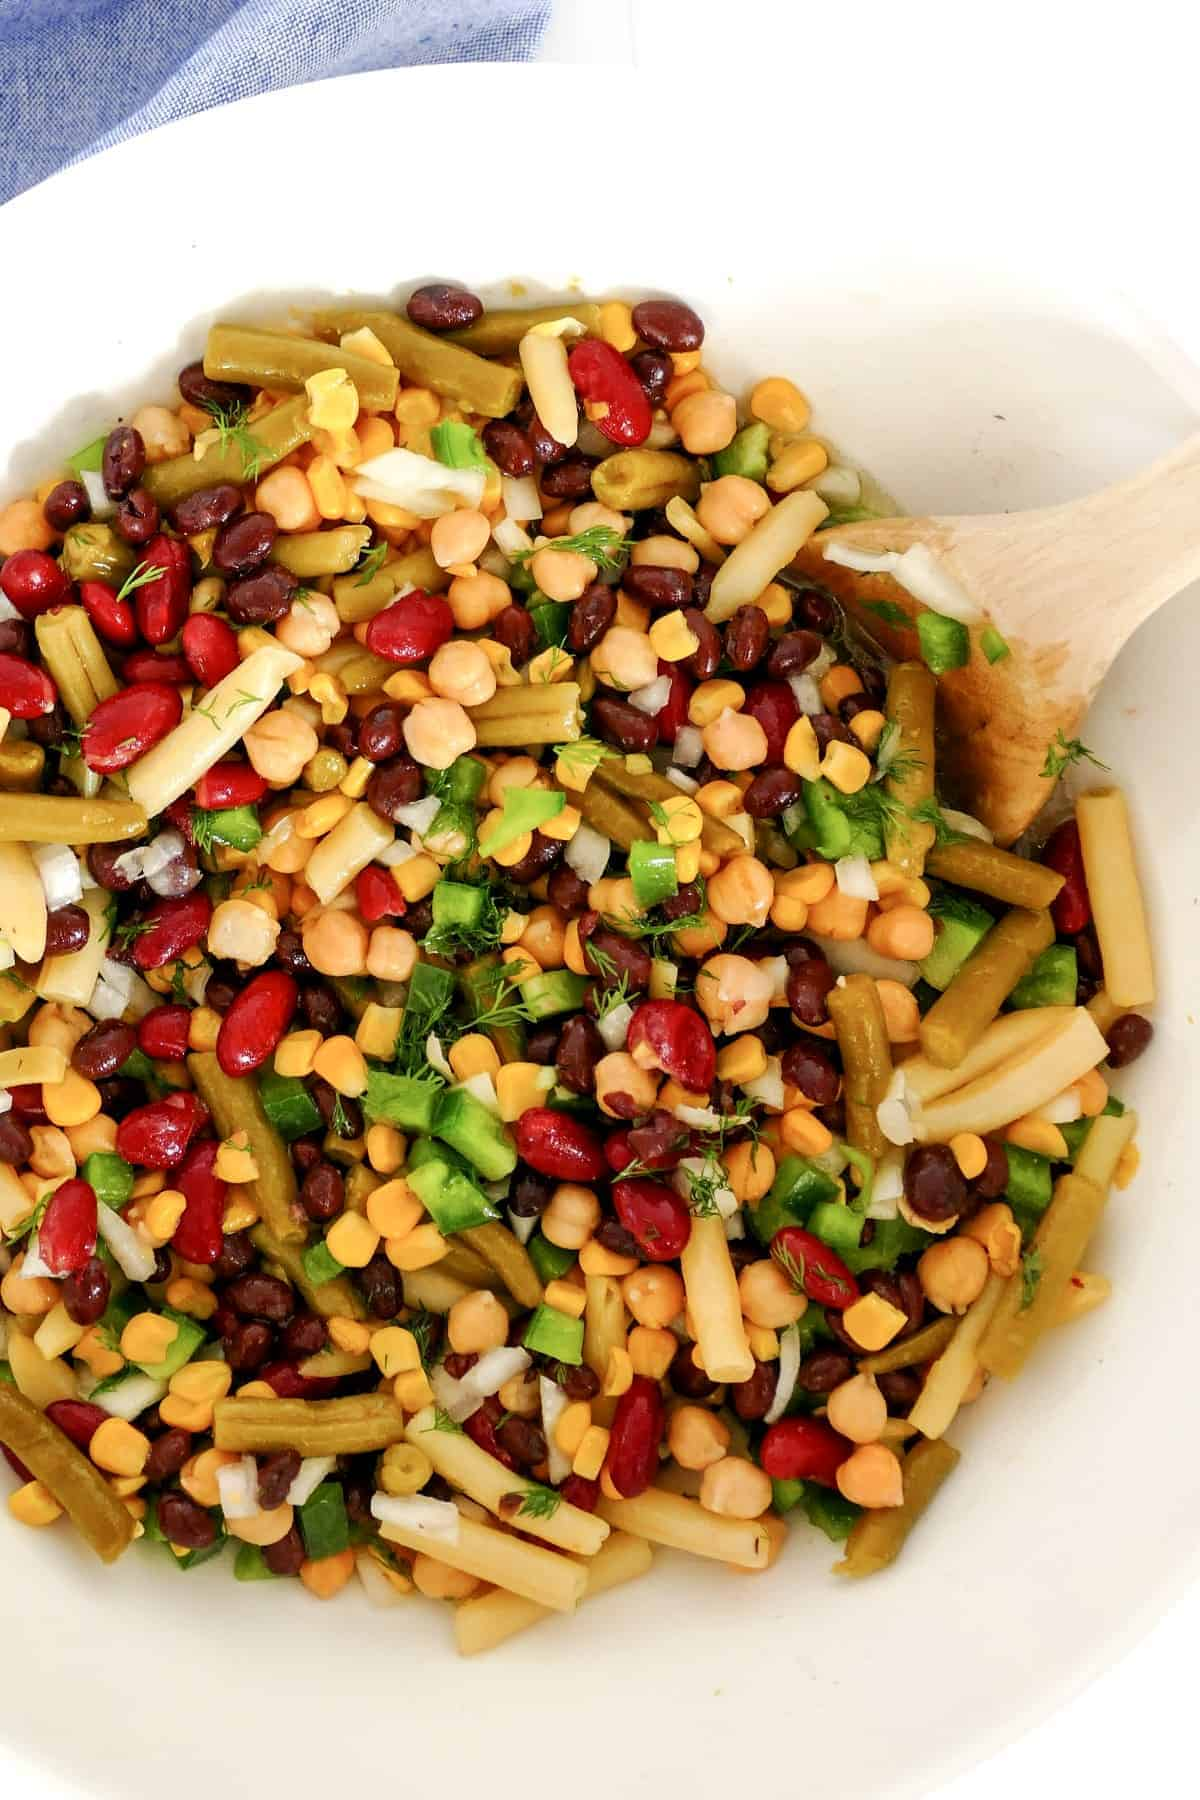 Overhead of a bowl full of mixed bean salad.